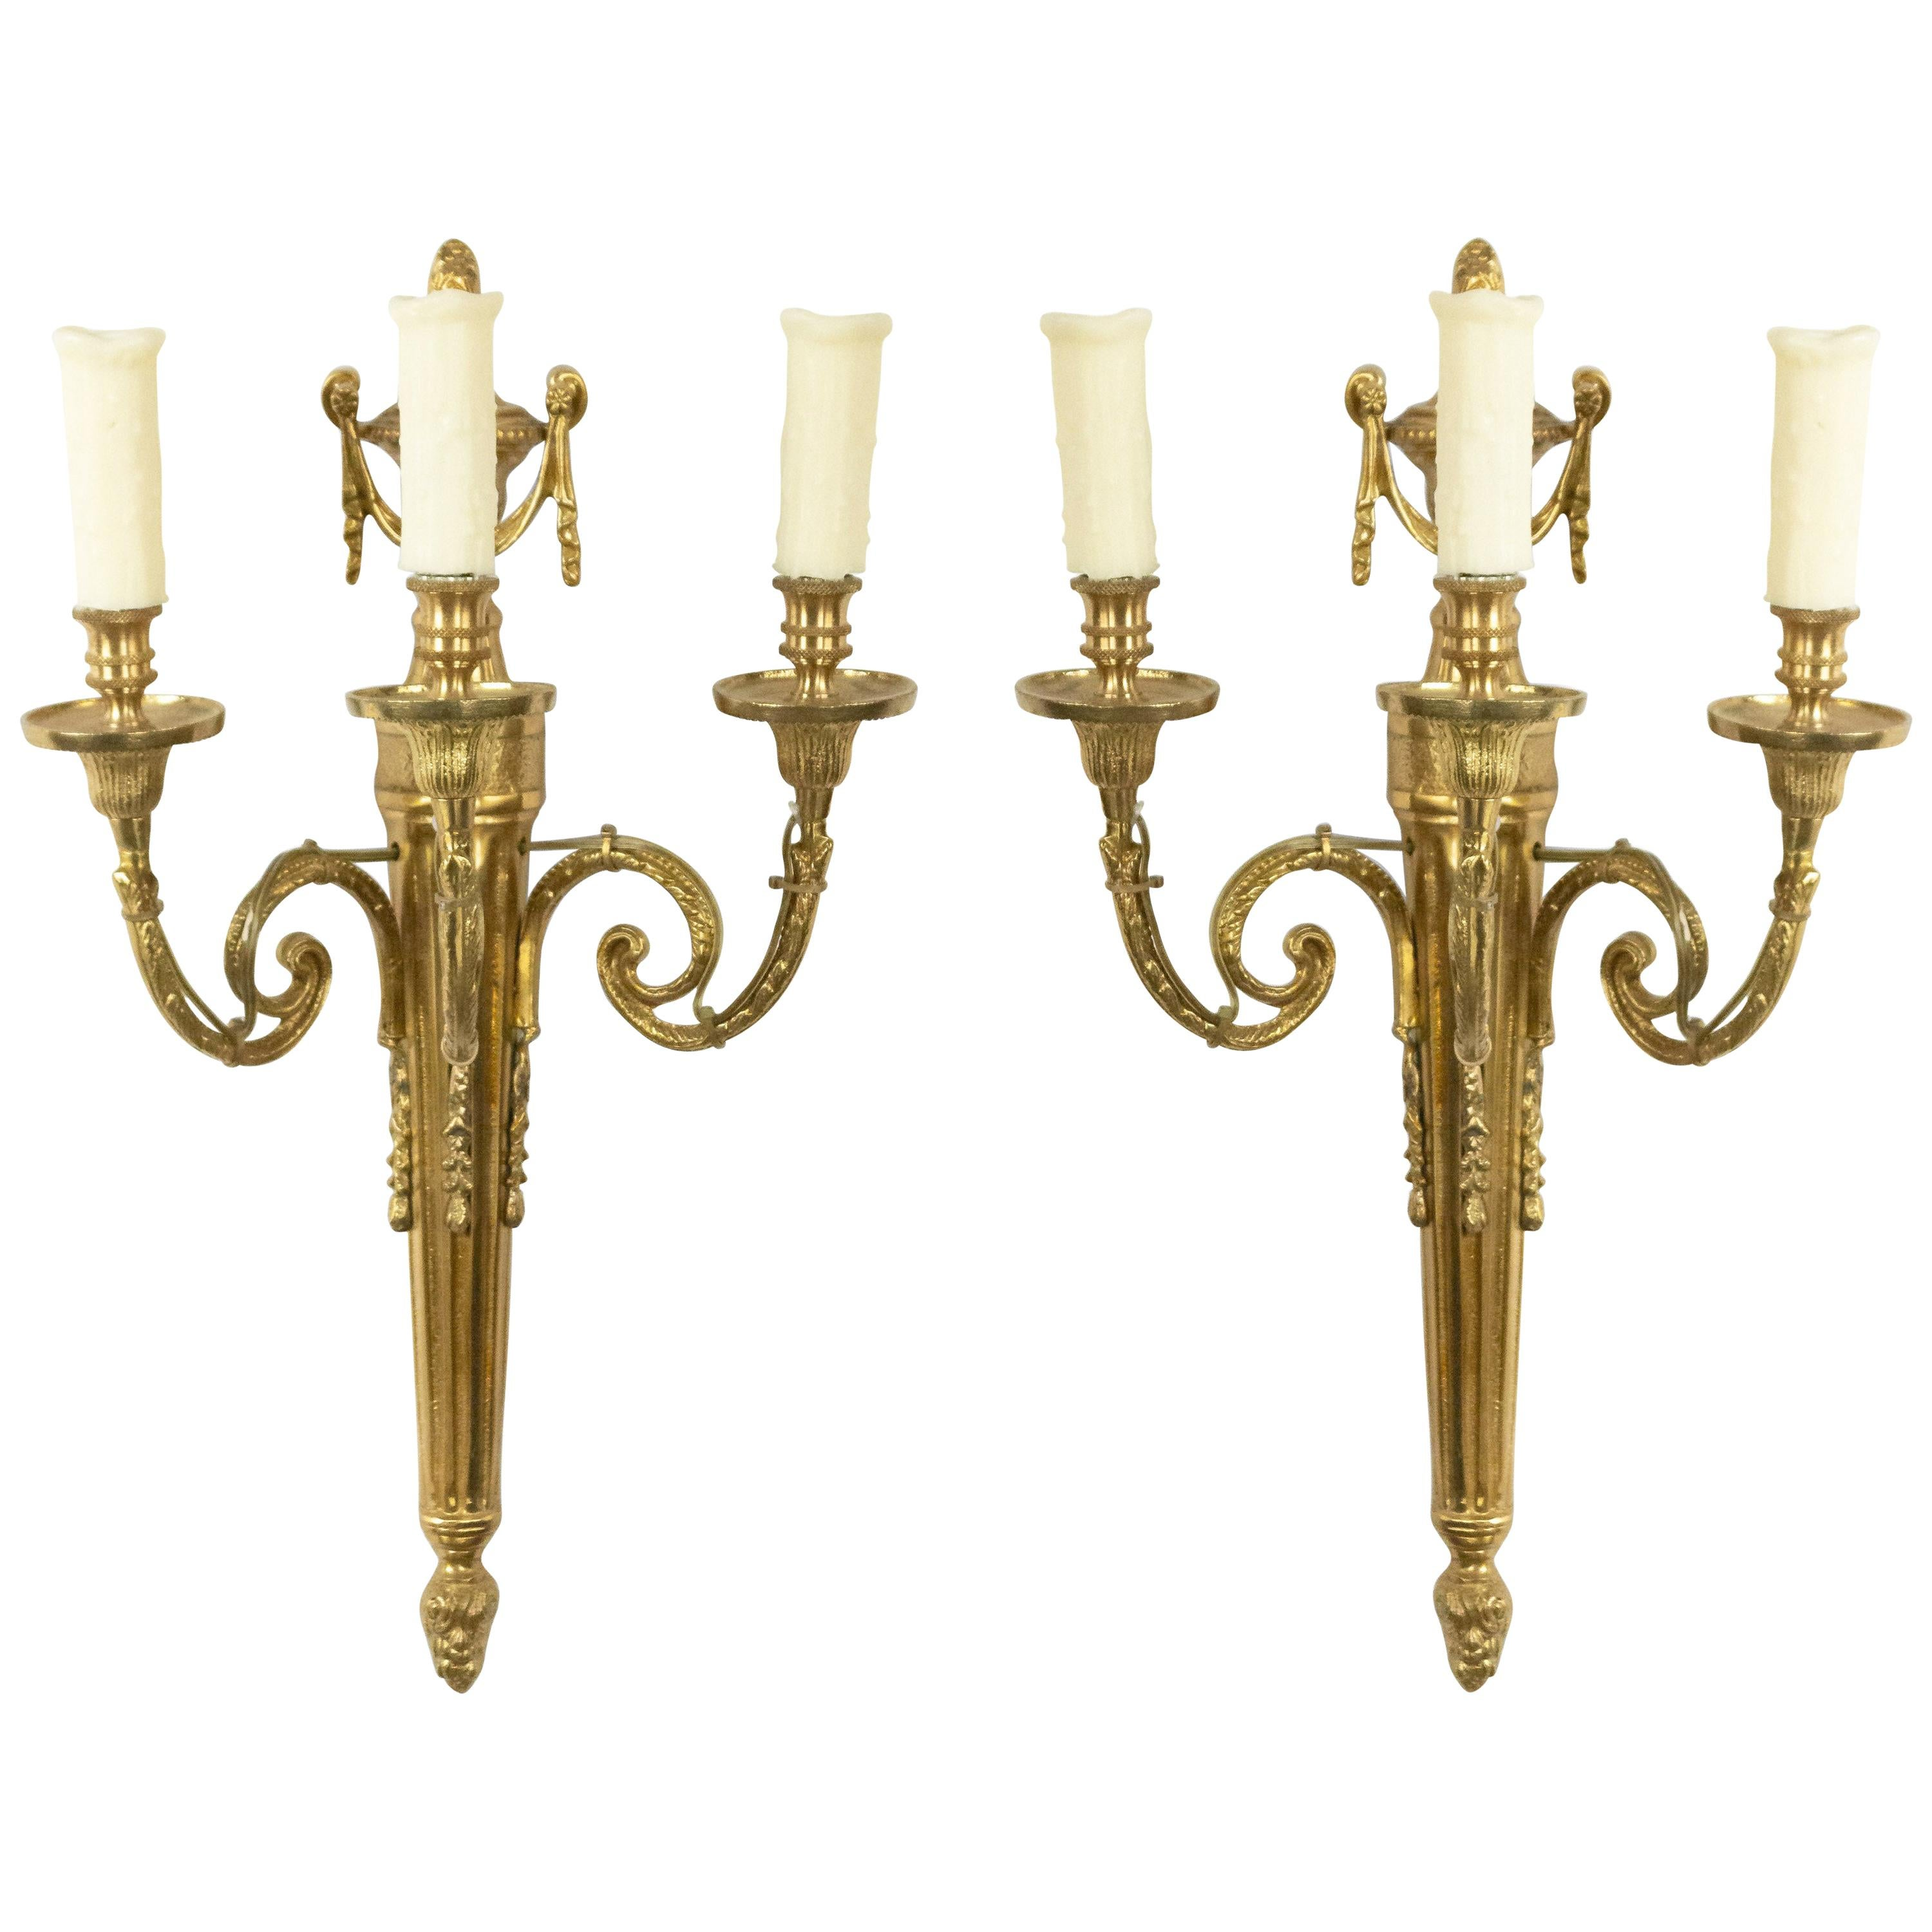 5 French Louis XVI Style Brass Wall Sconces